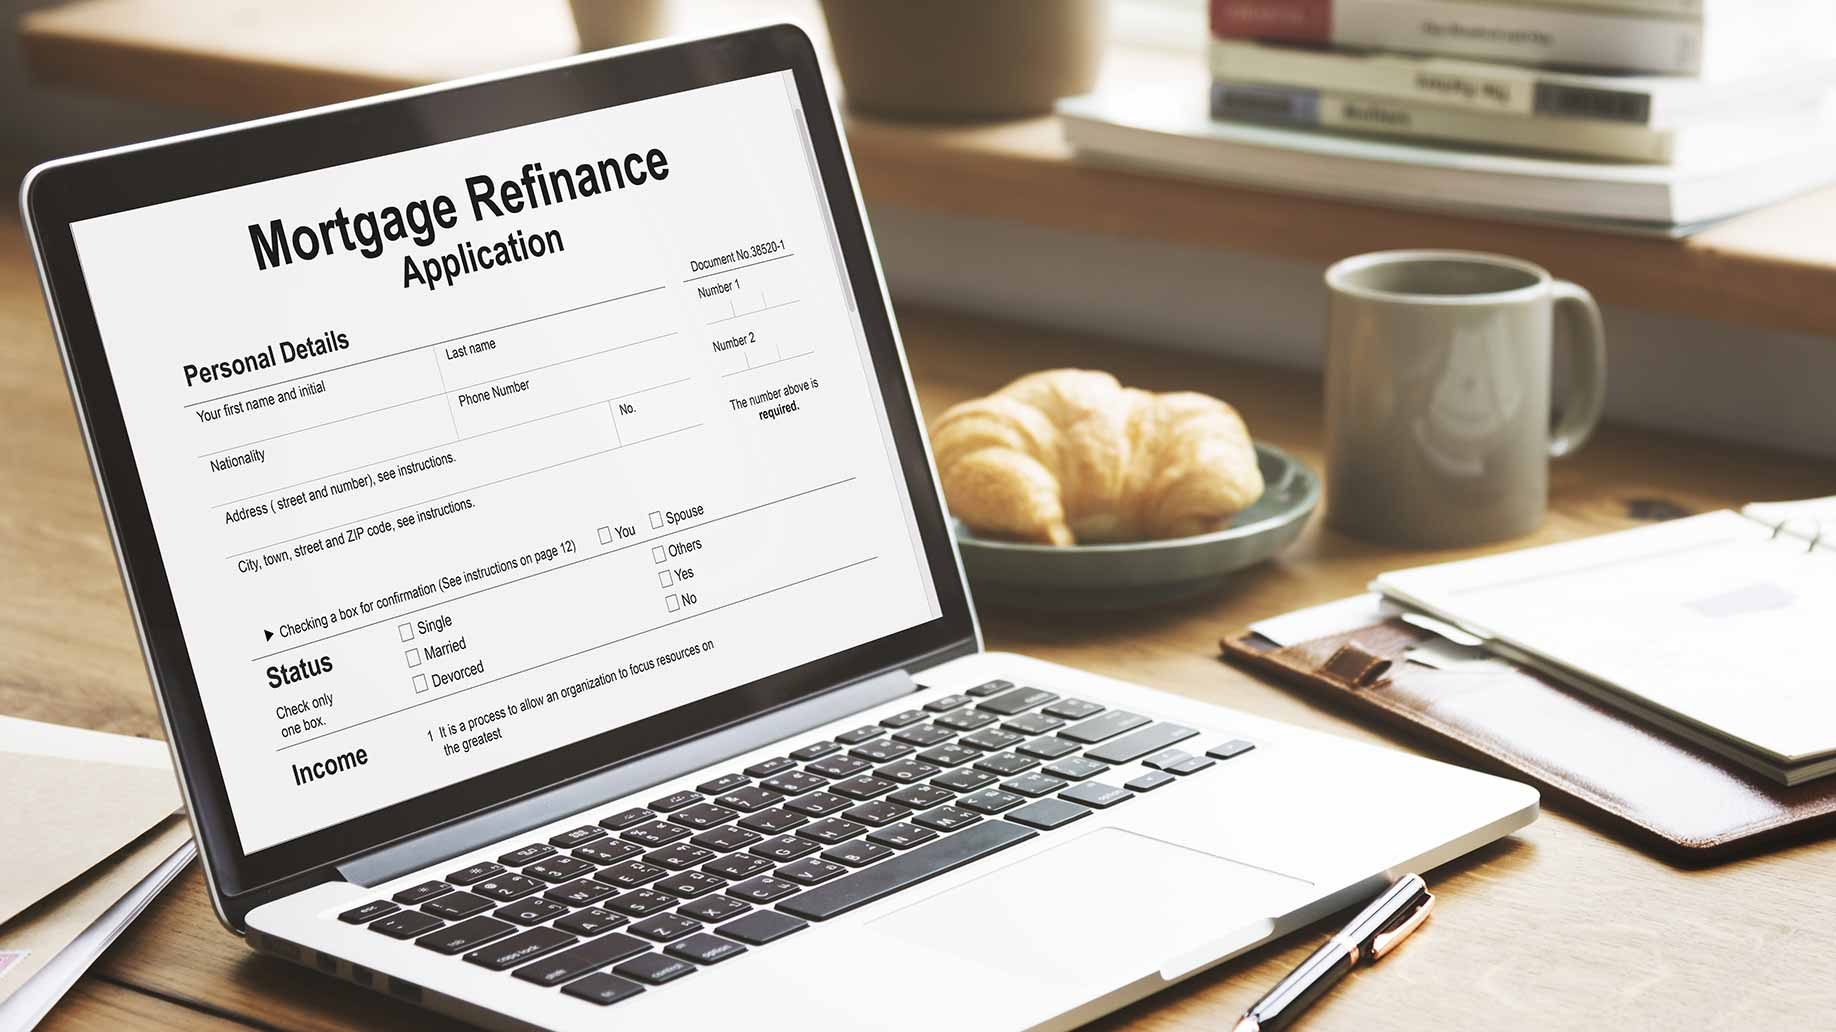 mortgage refinance application form open on laptop